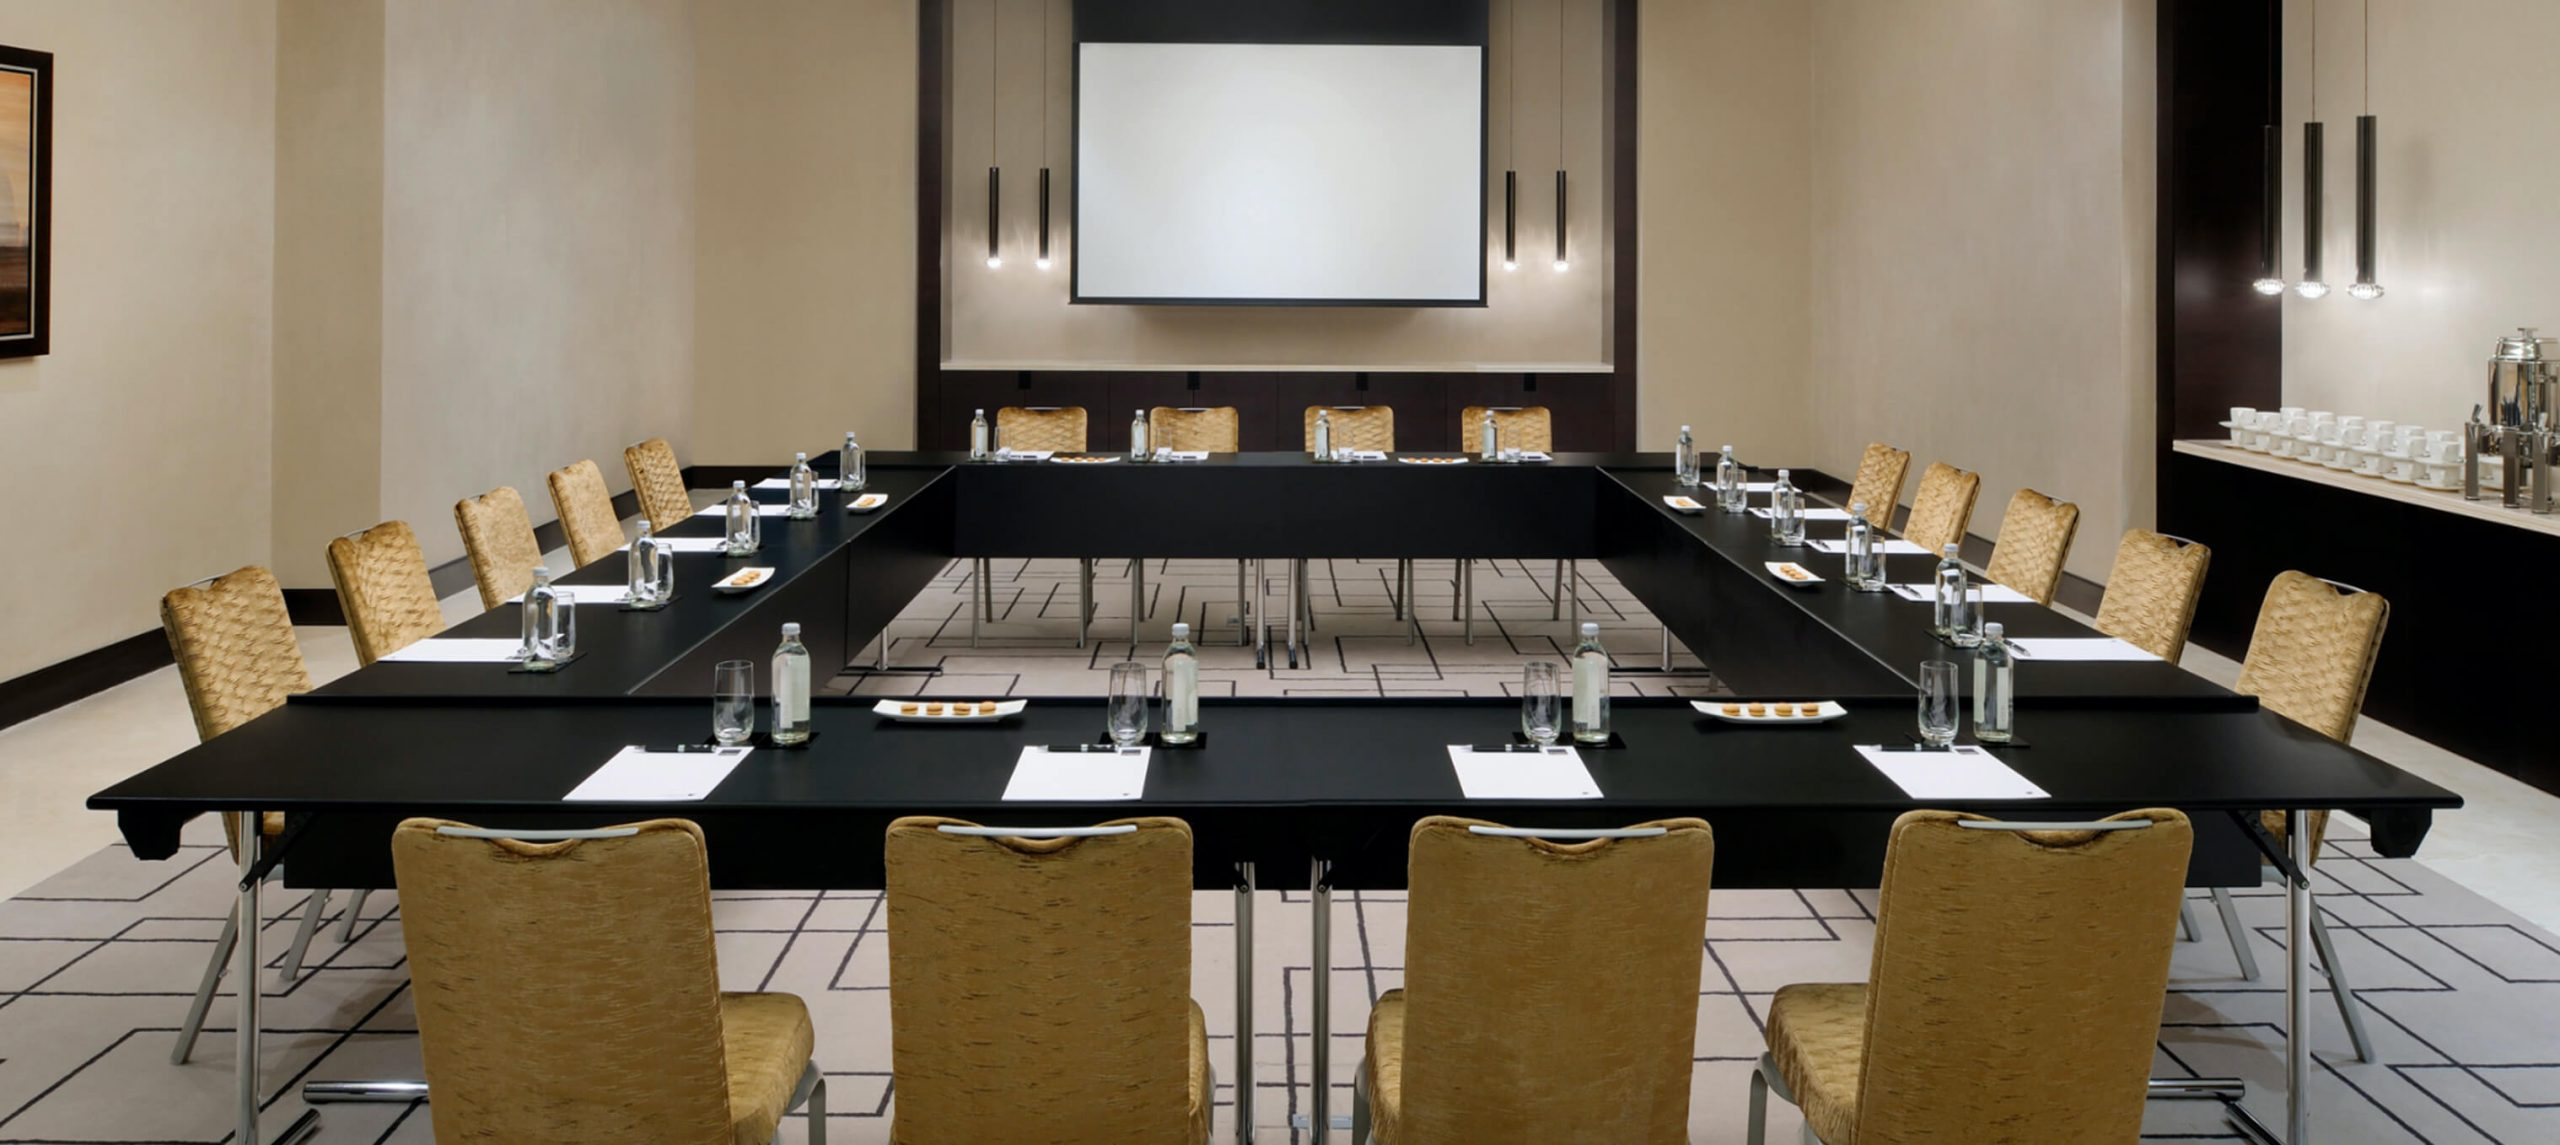 Conference room featuring Orvia Chairs & System C Tables